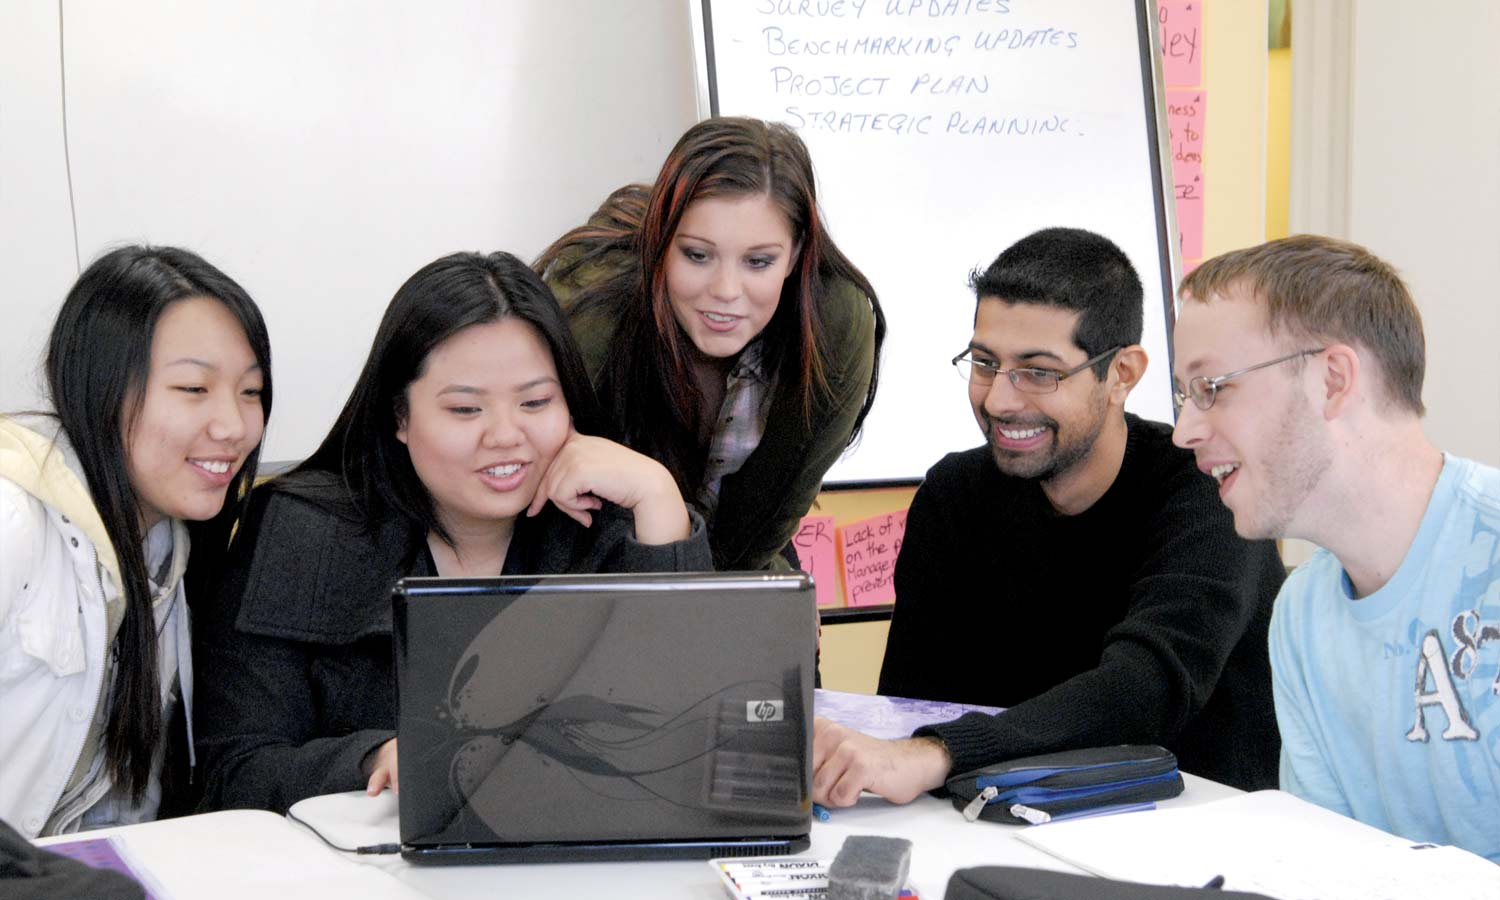 develops students' abilities as educators and their leadership and presentation skills